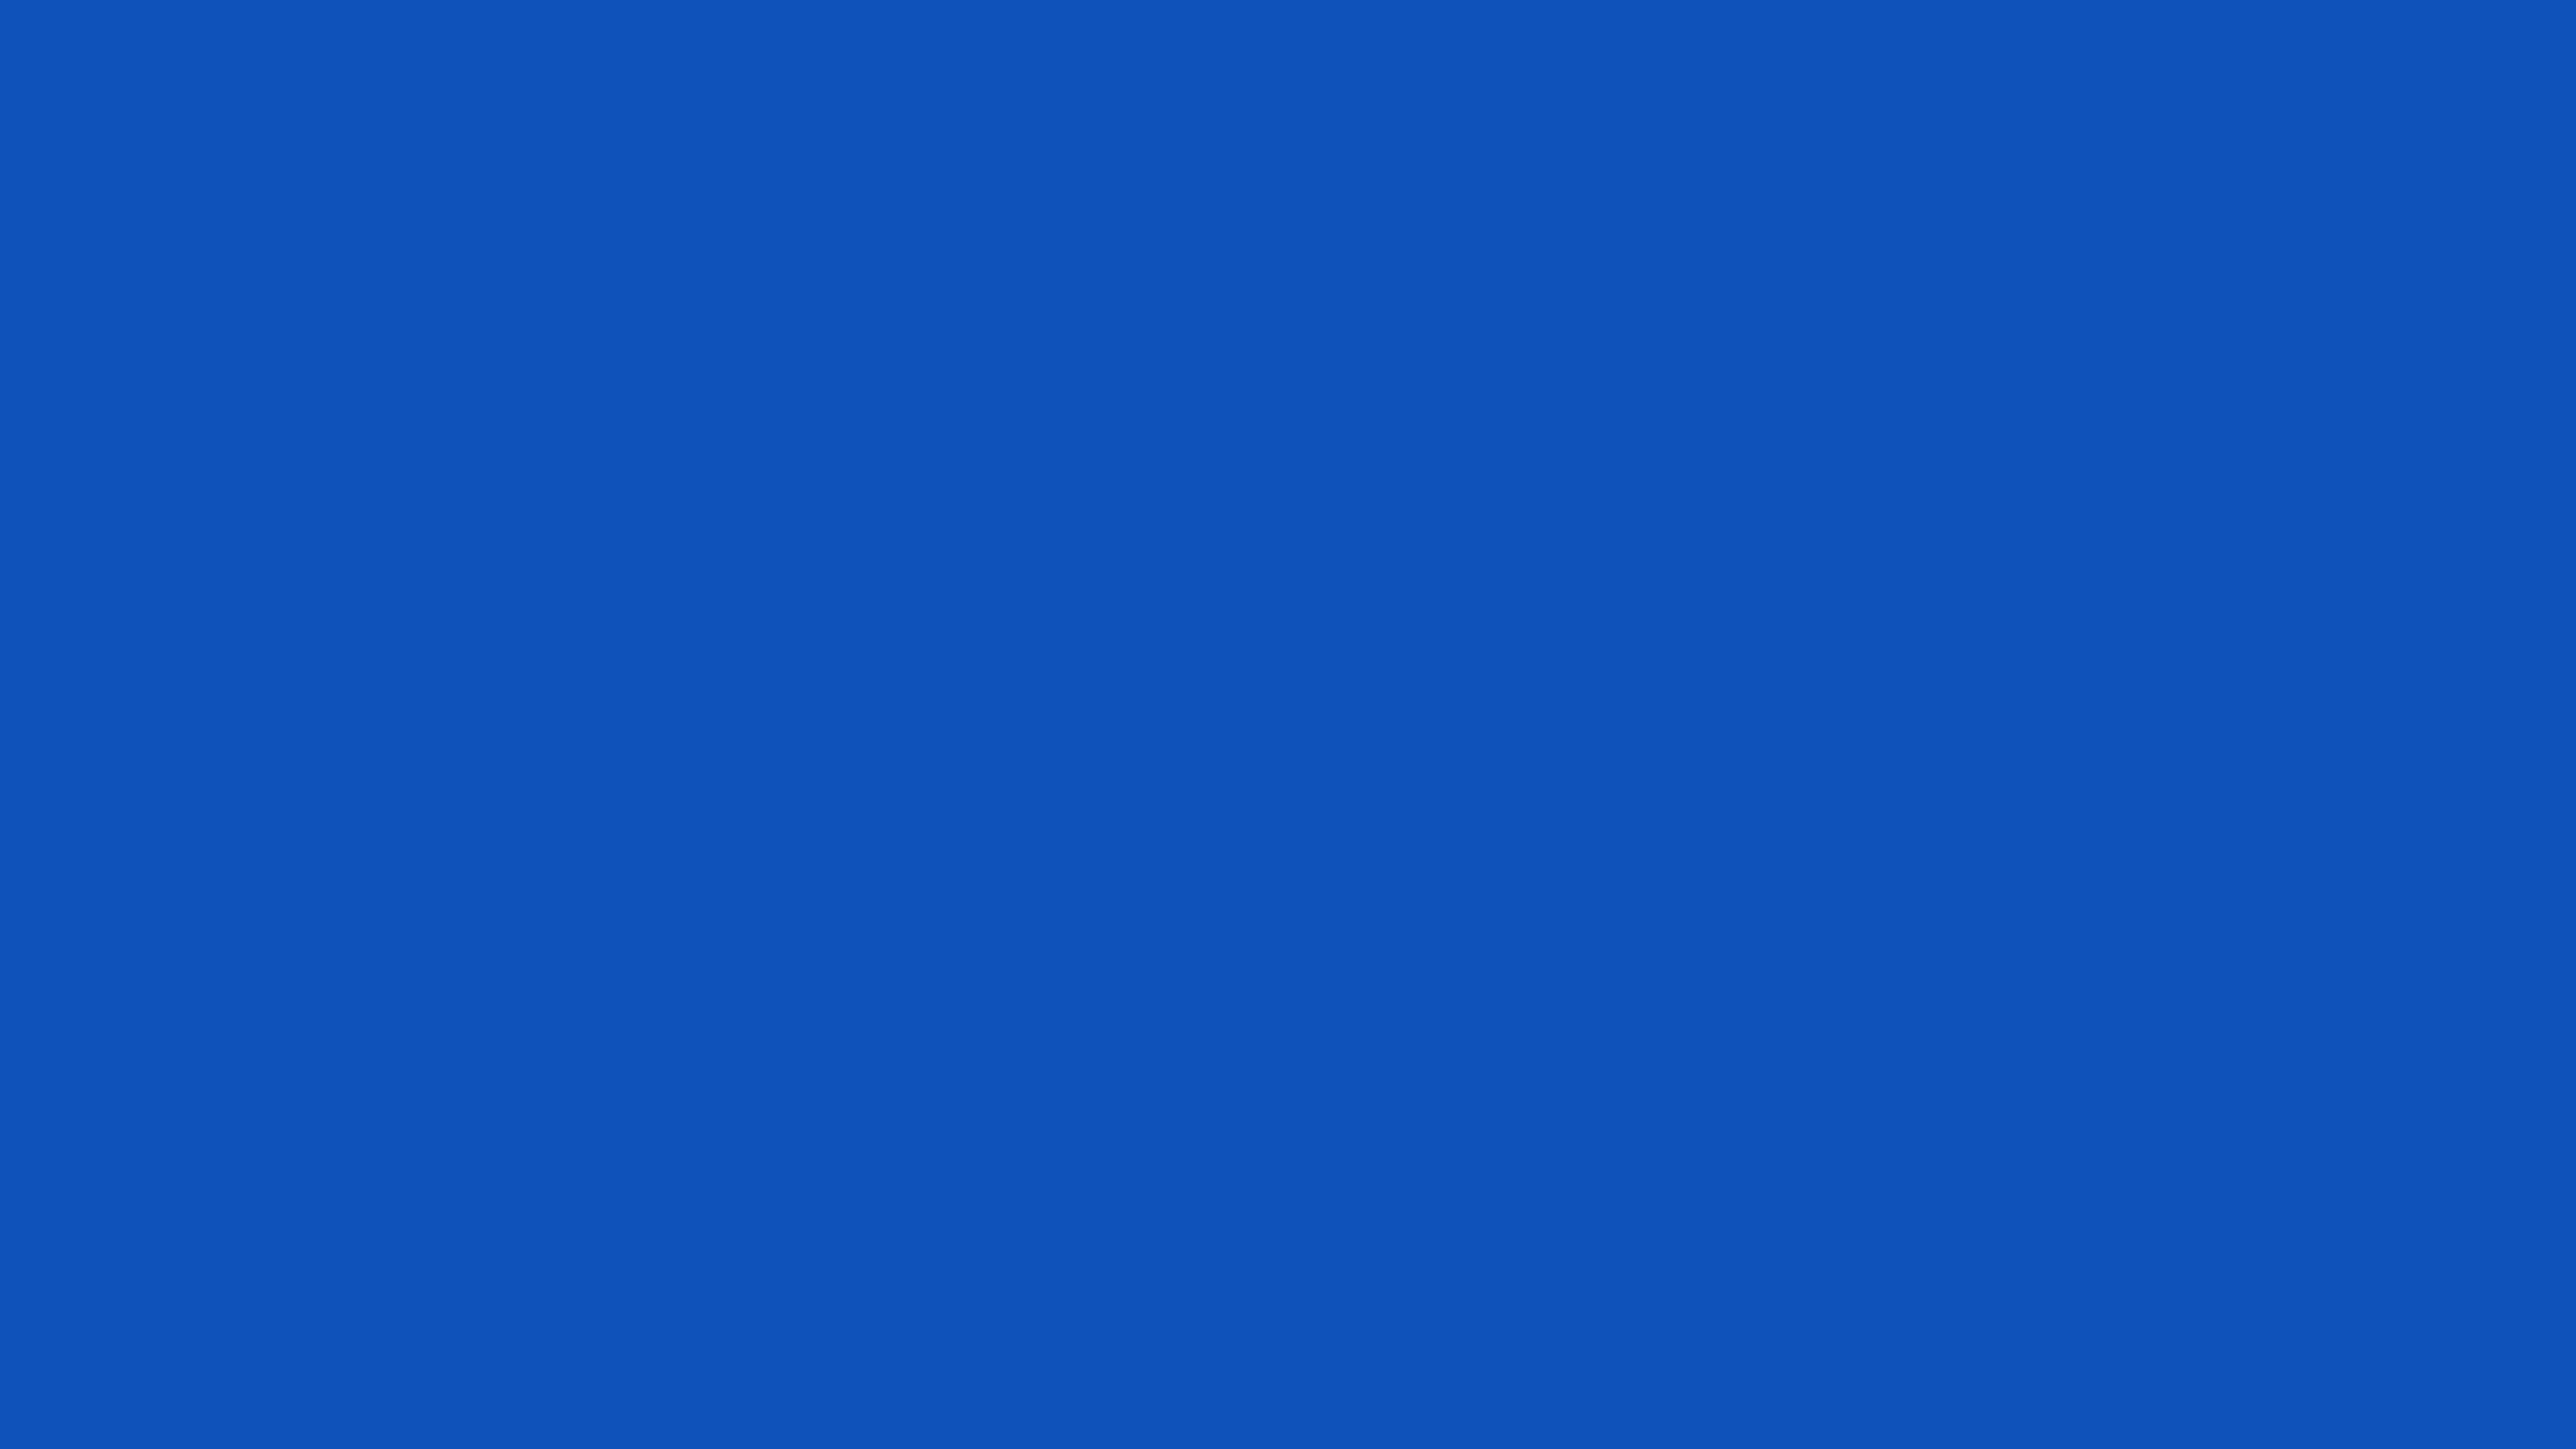 5120x2880 Sapphire Solid Color Background